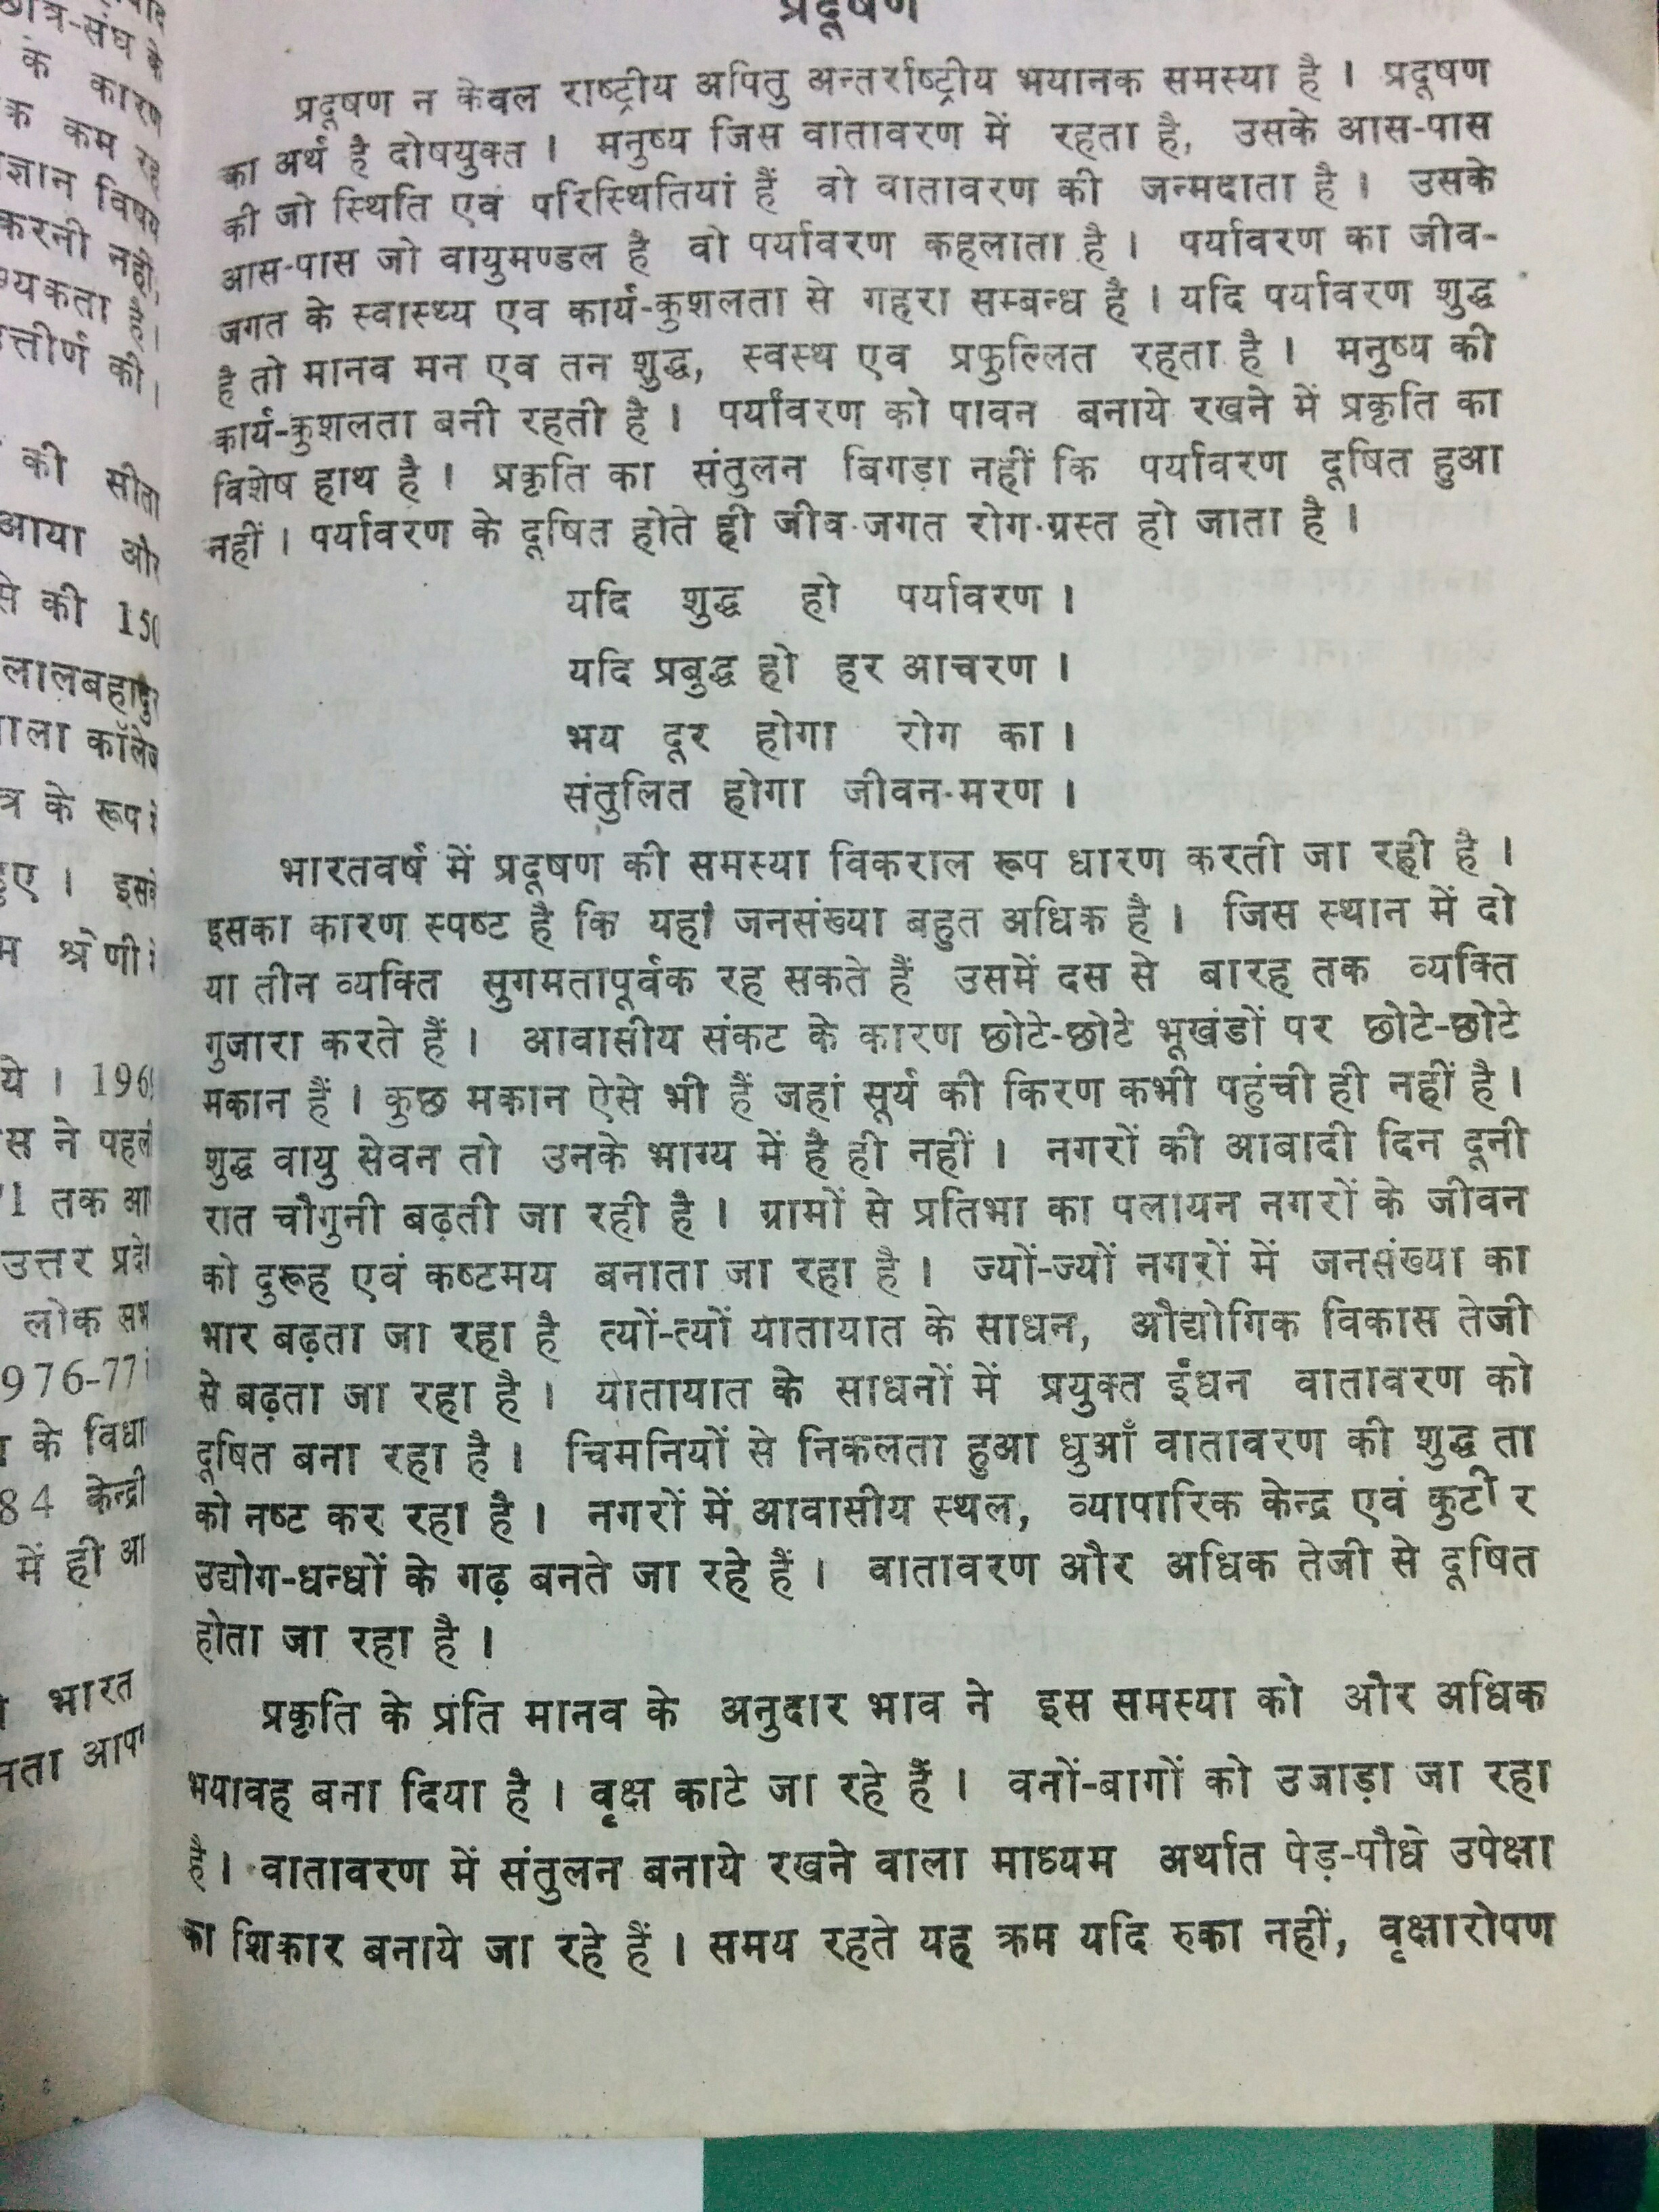 essay on granthalay aabadi ki samasya in hindi